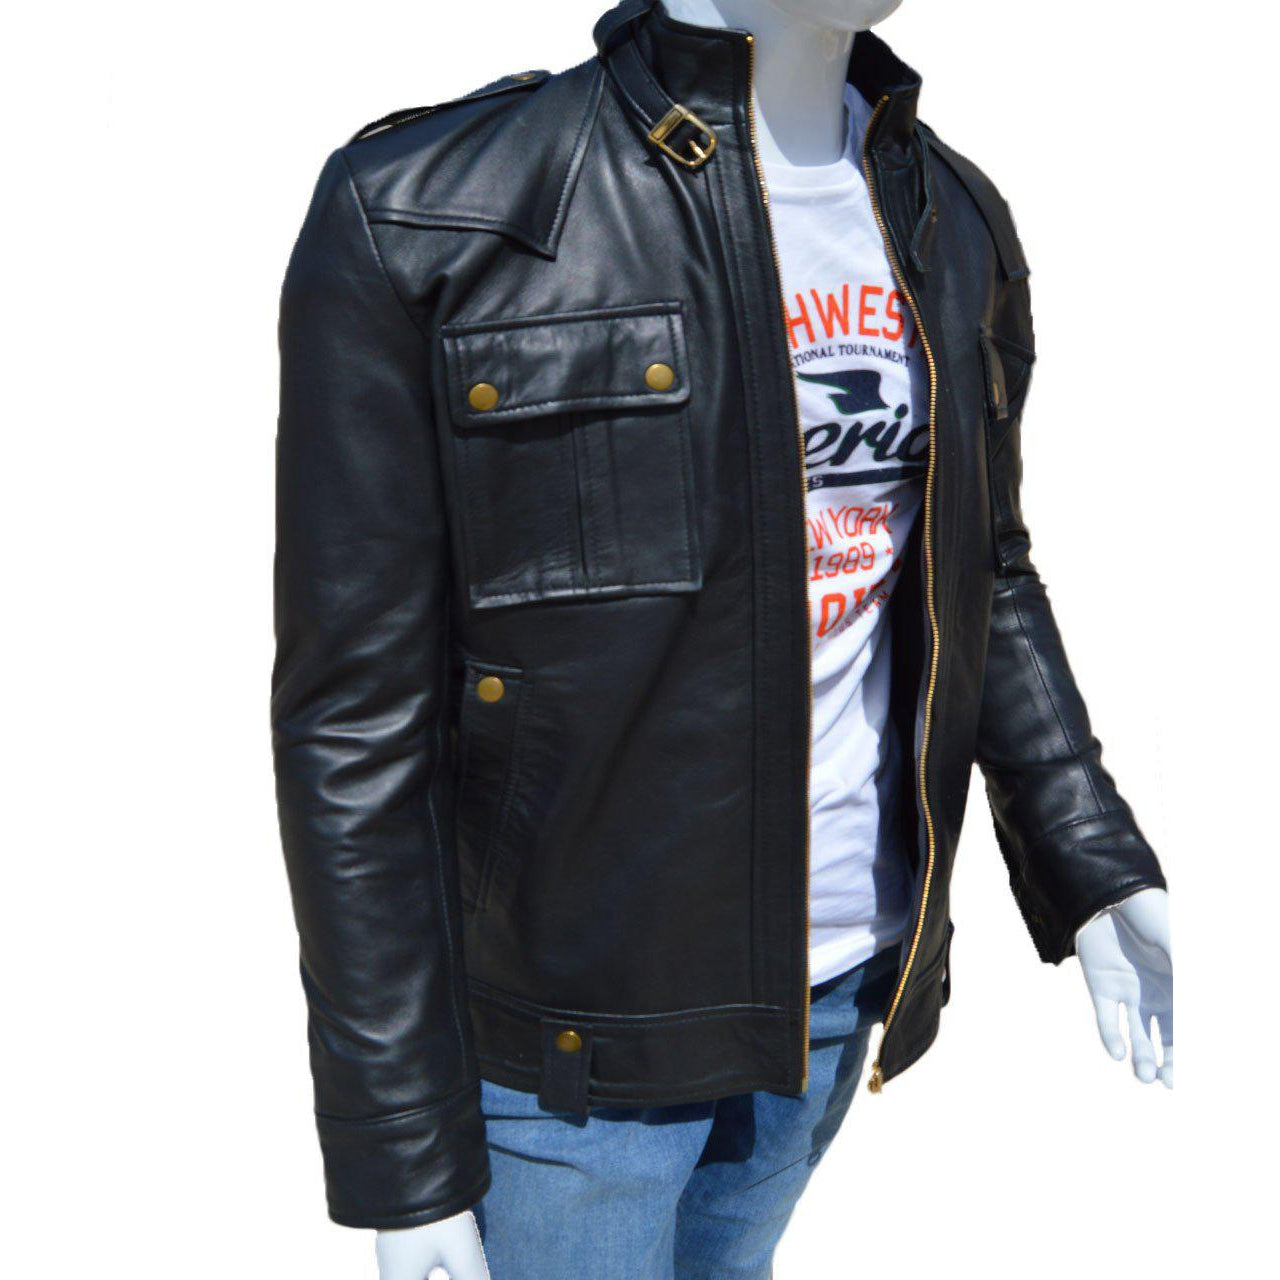 Black Stylish Leather Jacket with Front Pockets for Men - Leather Jacket